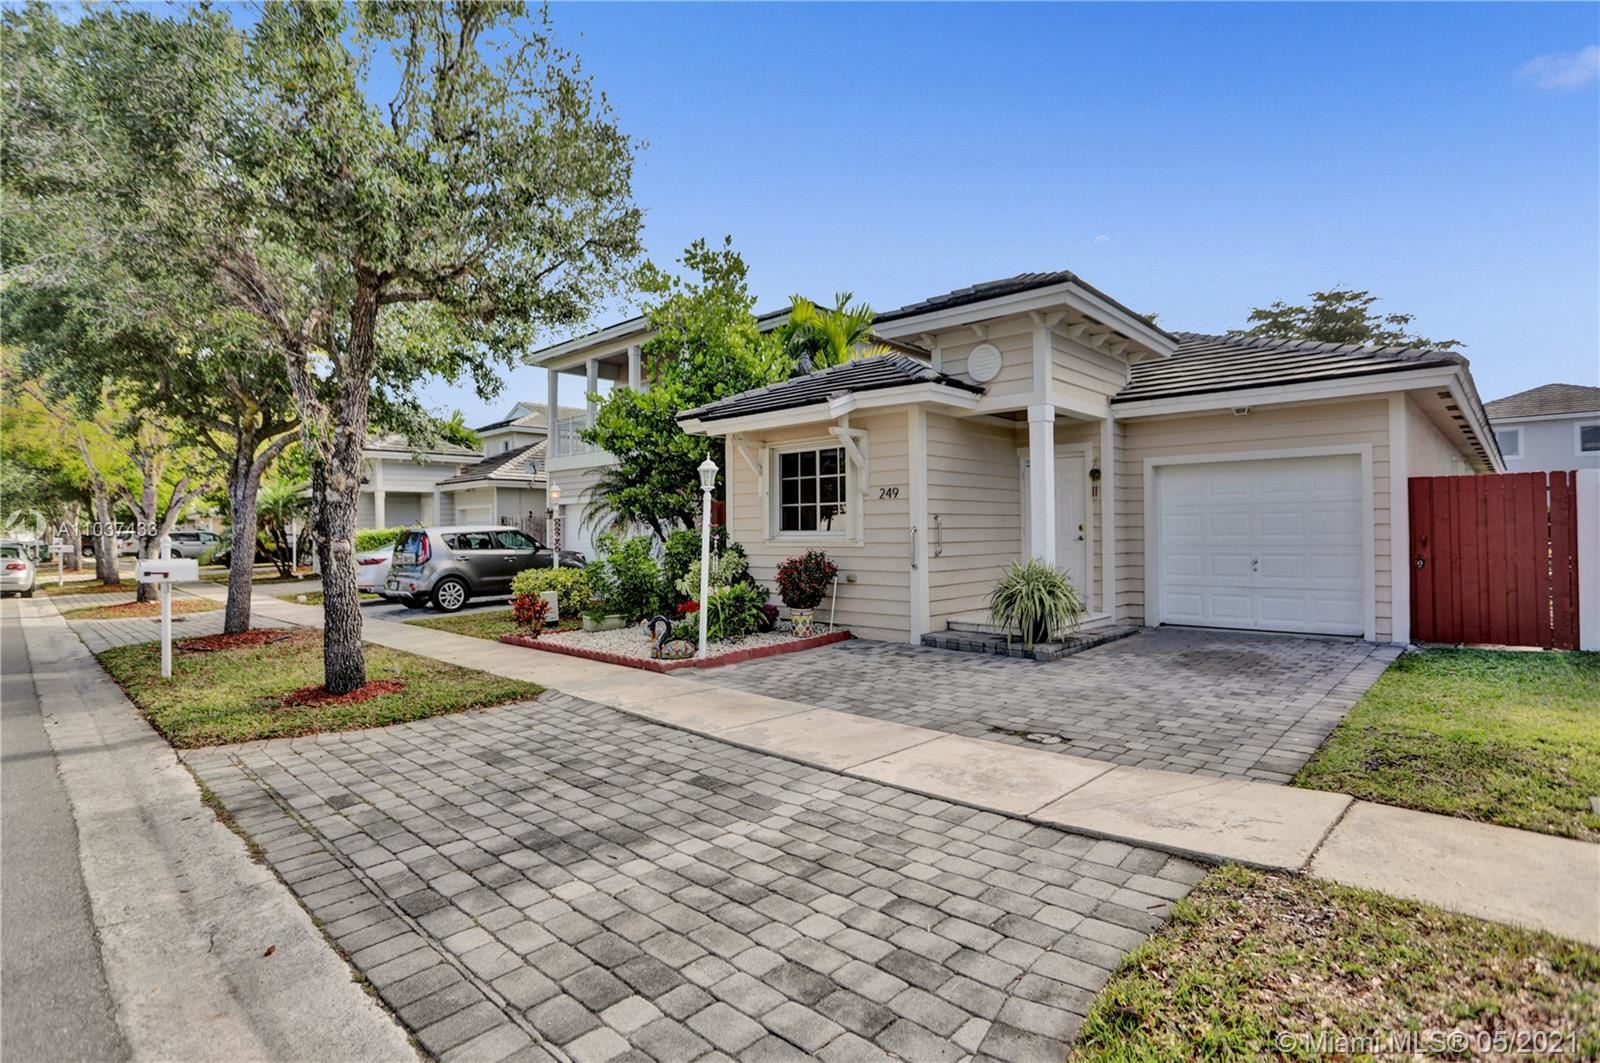 Photo of 249 SE 32nd Ave, Homestead, FL 33033 (MLS # A11037433)